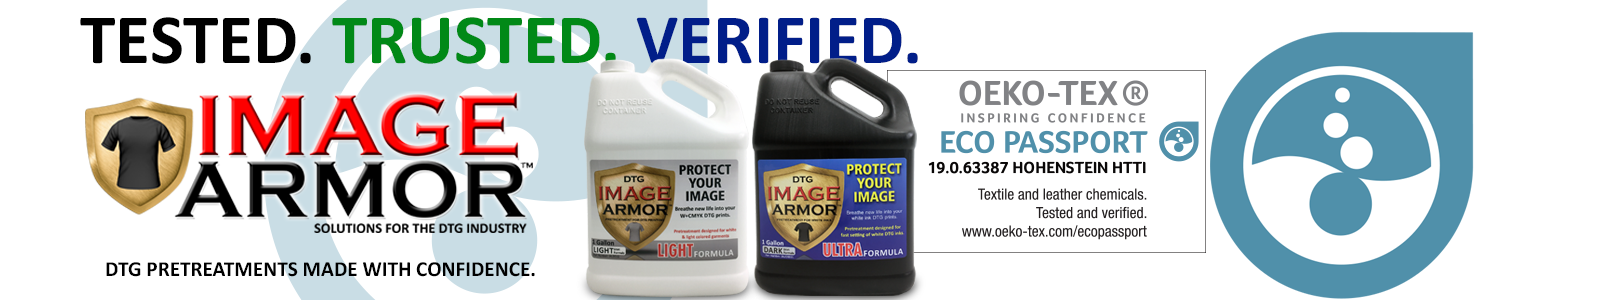 Image Armor DTG Pretreatments Oeko-Tex Certified